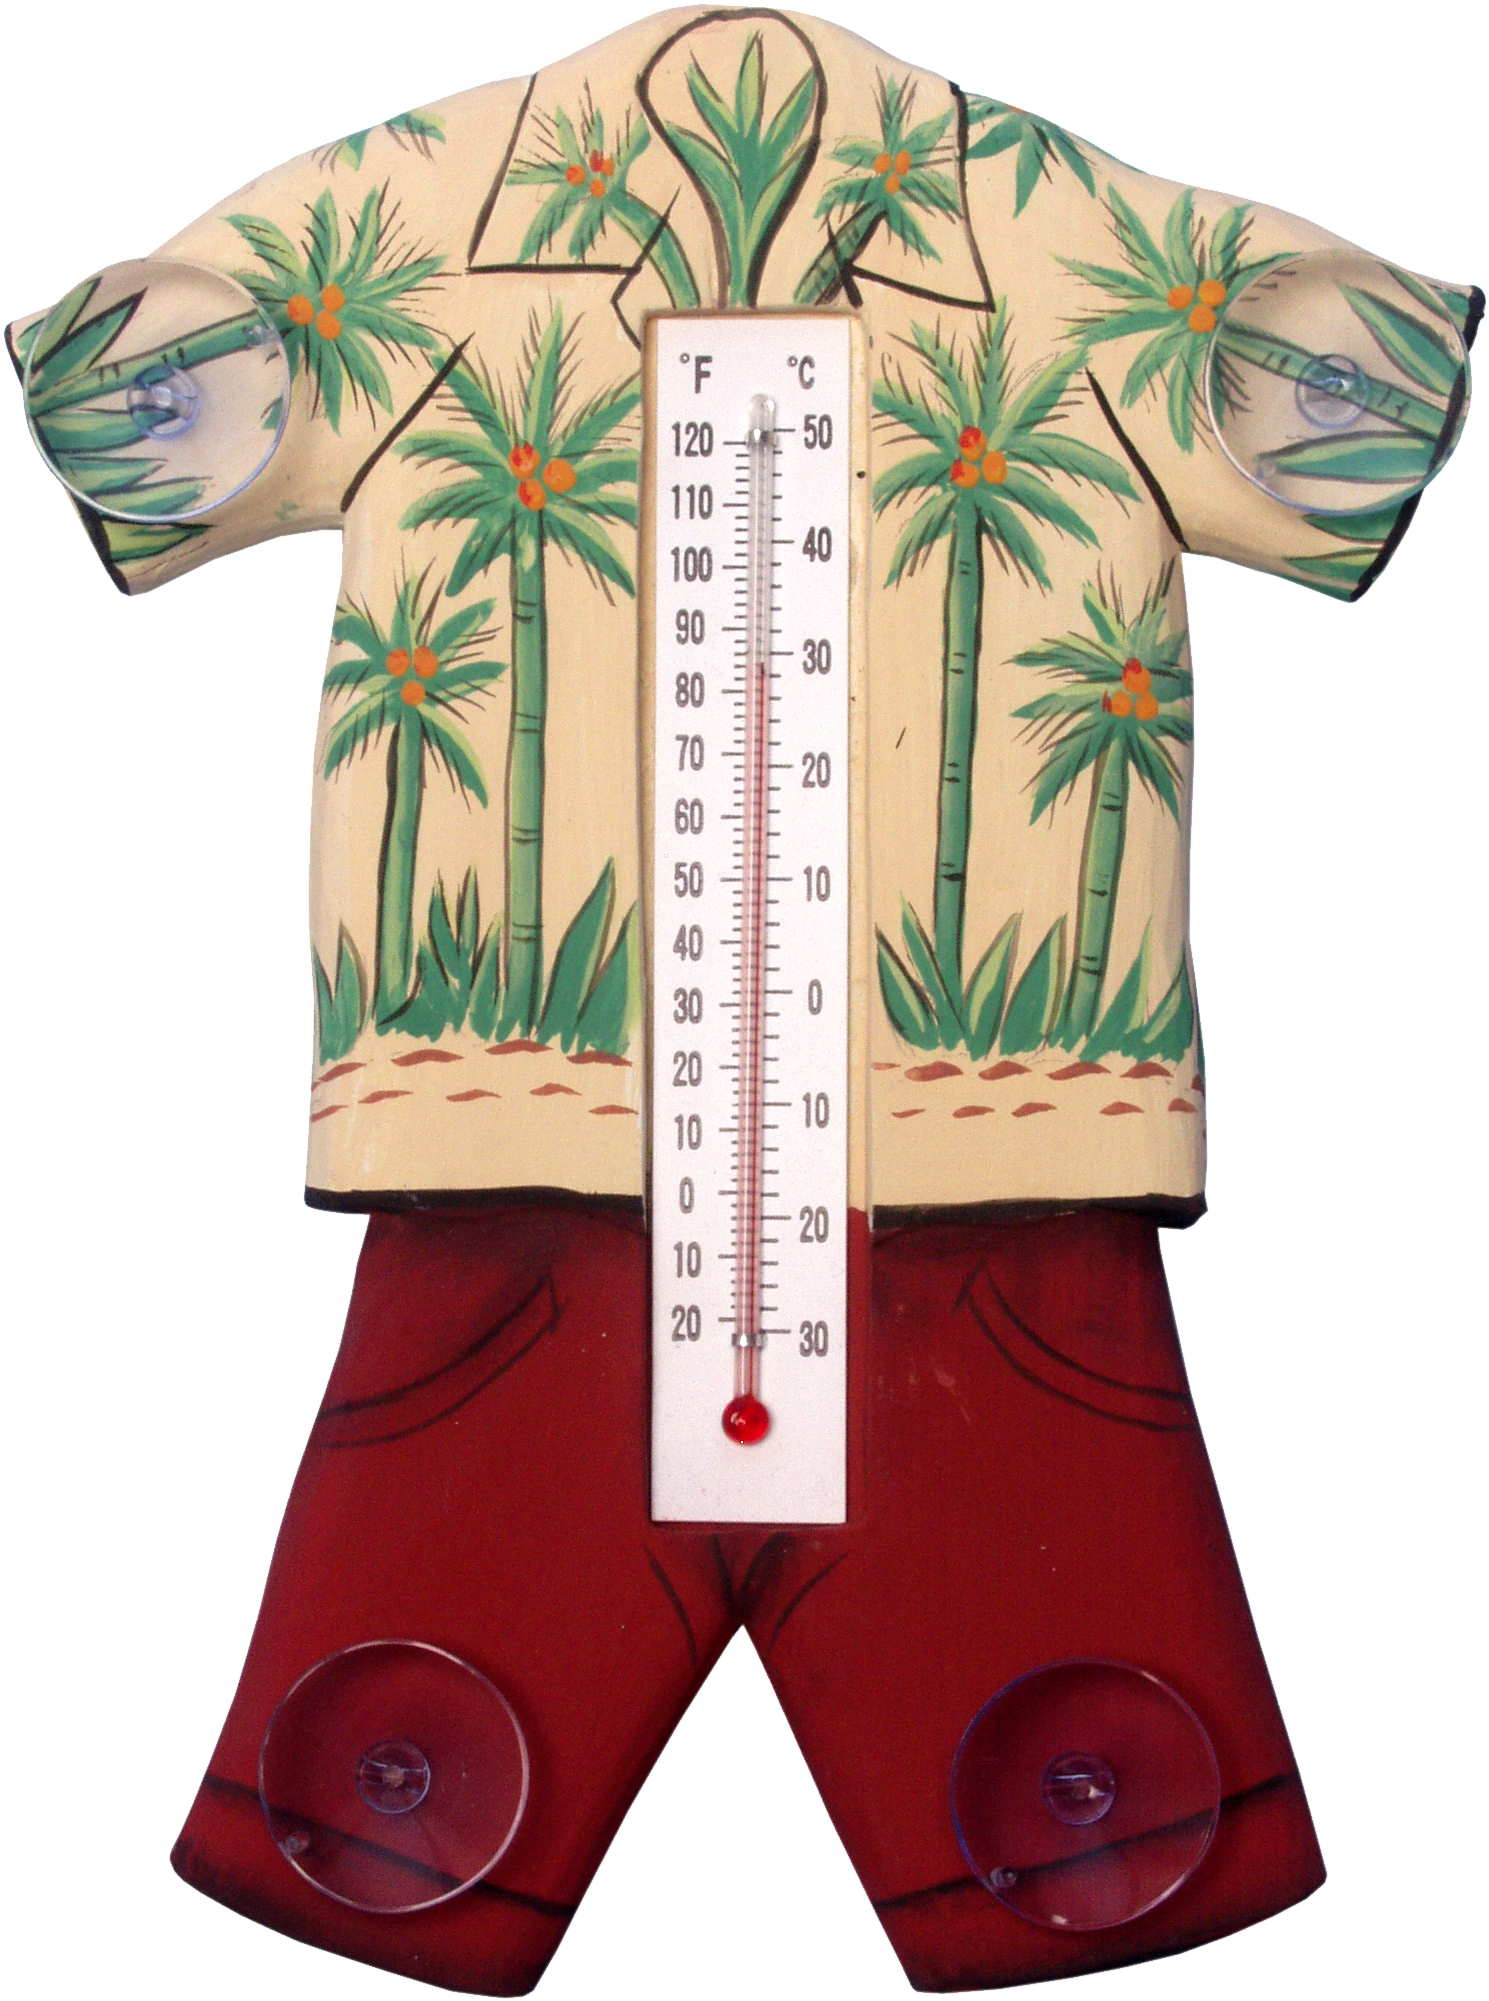 Hawaiin Shirt Small Window Thermometer